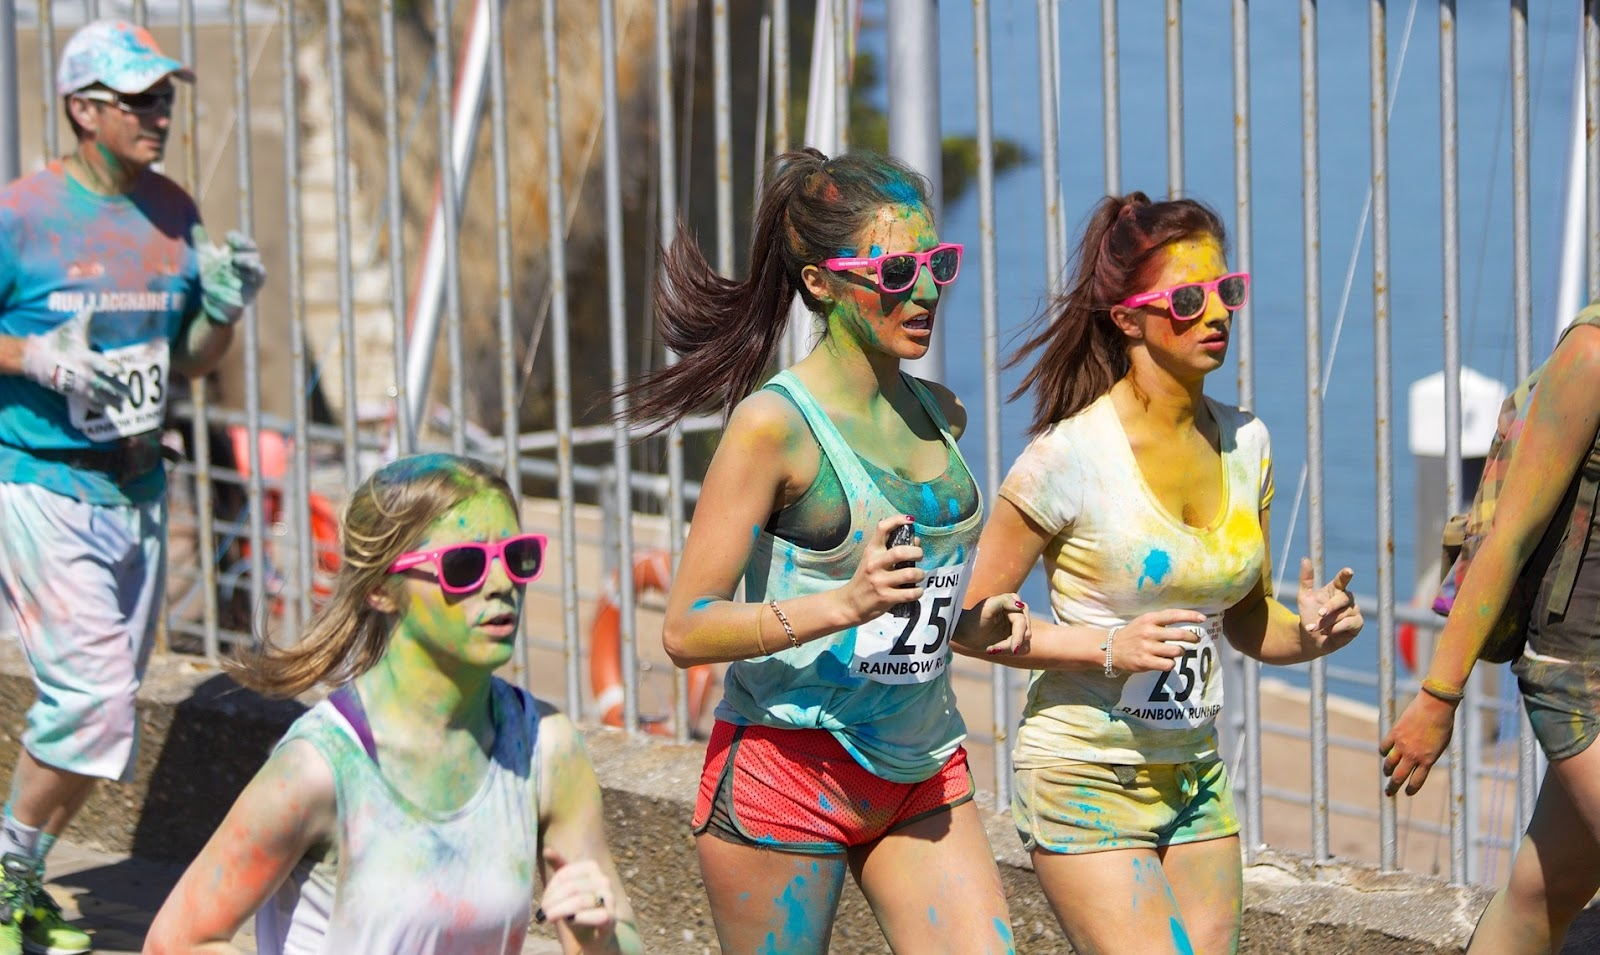 color-run-698417_1920.jpg